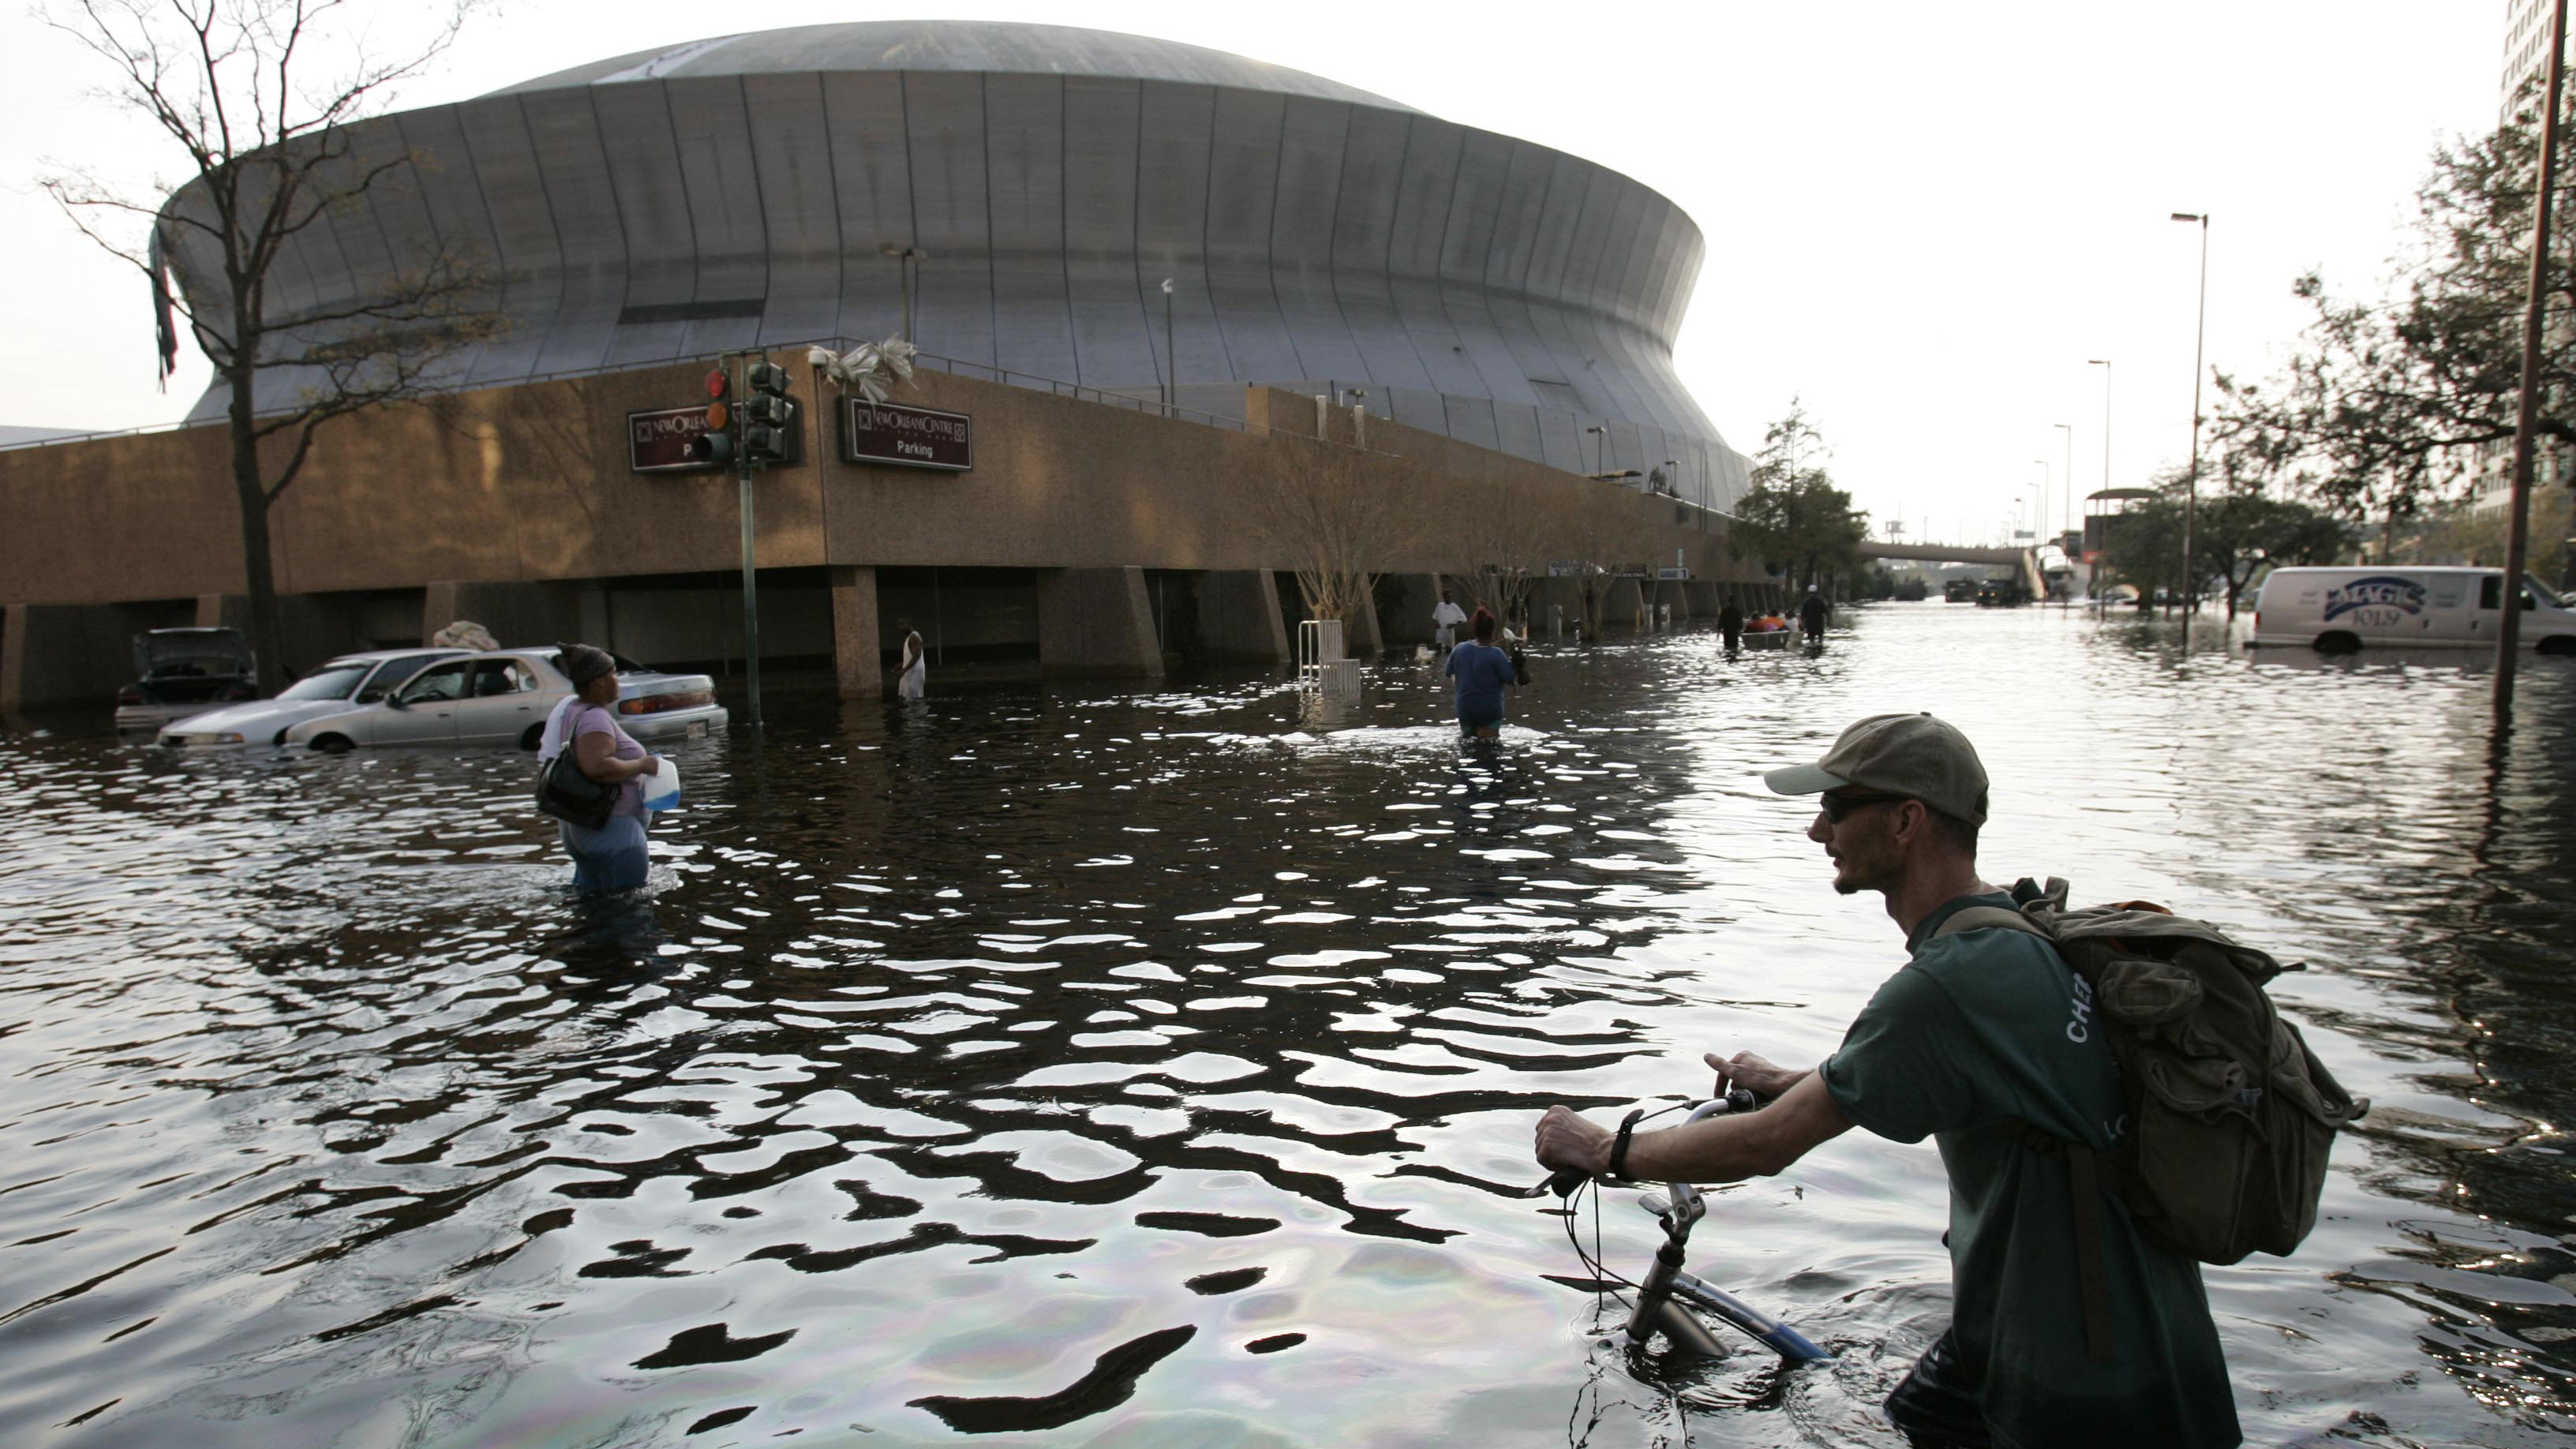 Aug. 31, 2005, a man pushes his bicycle through flood waters near the Superdome in New Orleans.